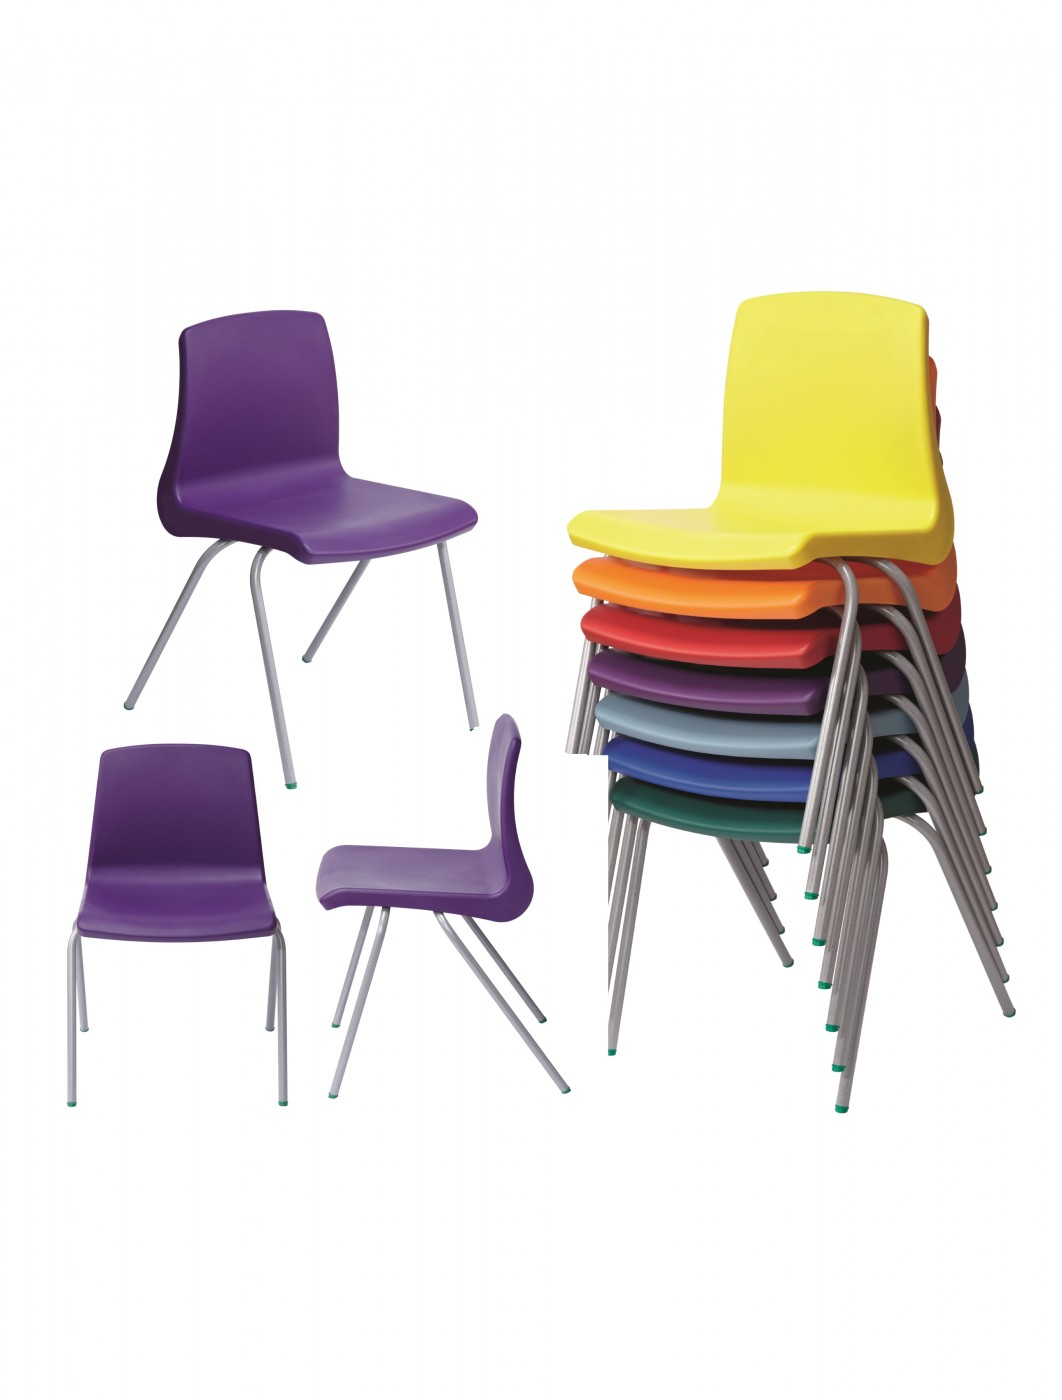 Superb Metalliform NP Chairs   Age 3 4 Years Polypropylene Classroom Chairs NP1    Enlarged View